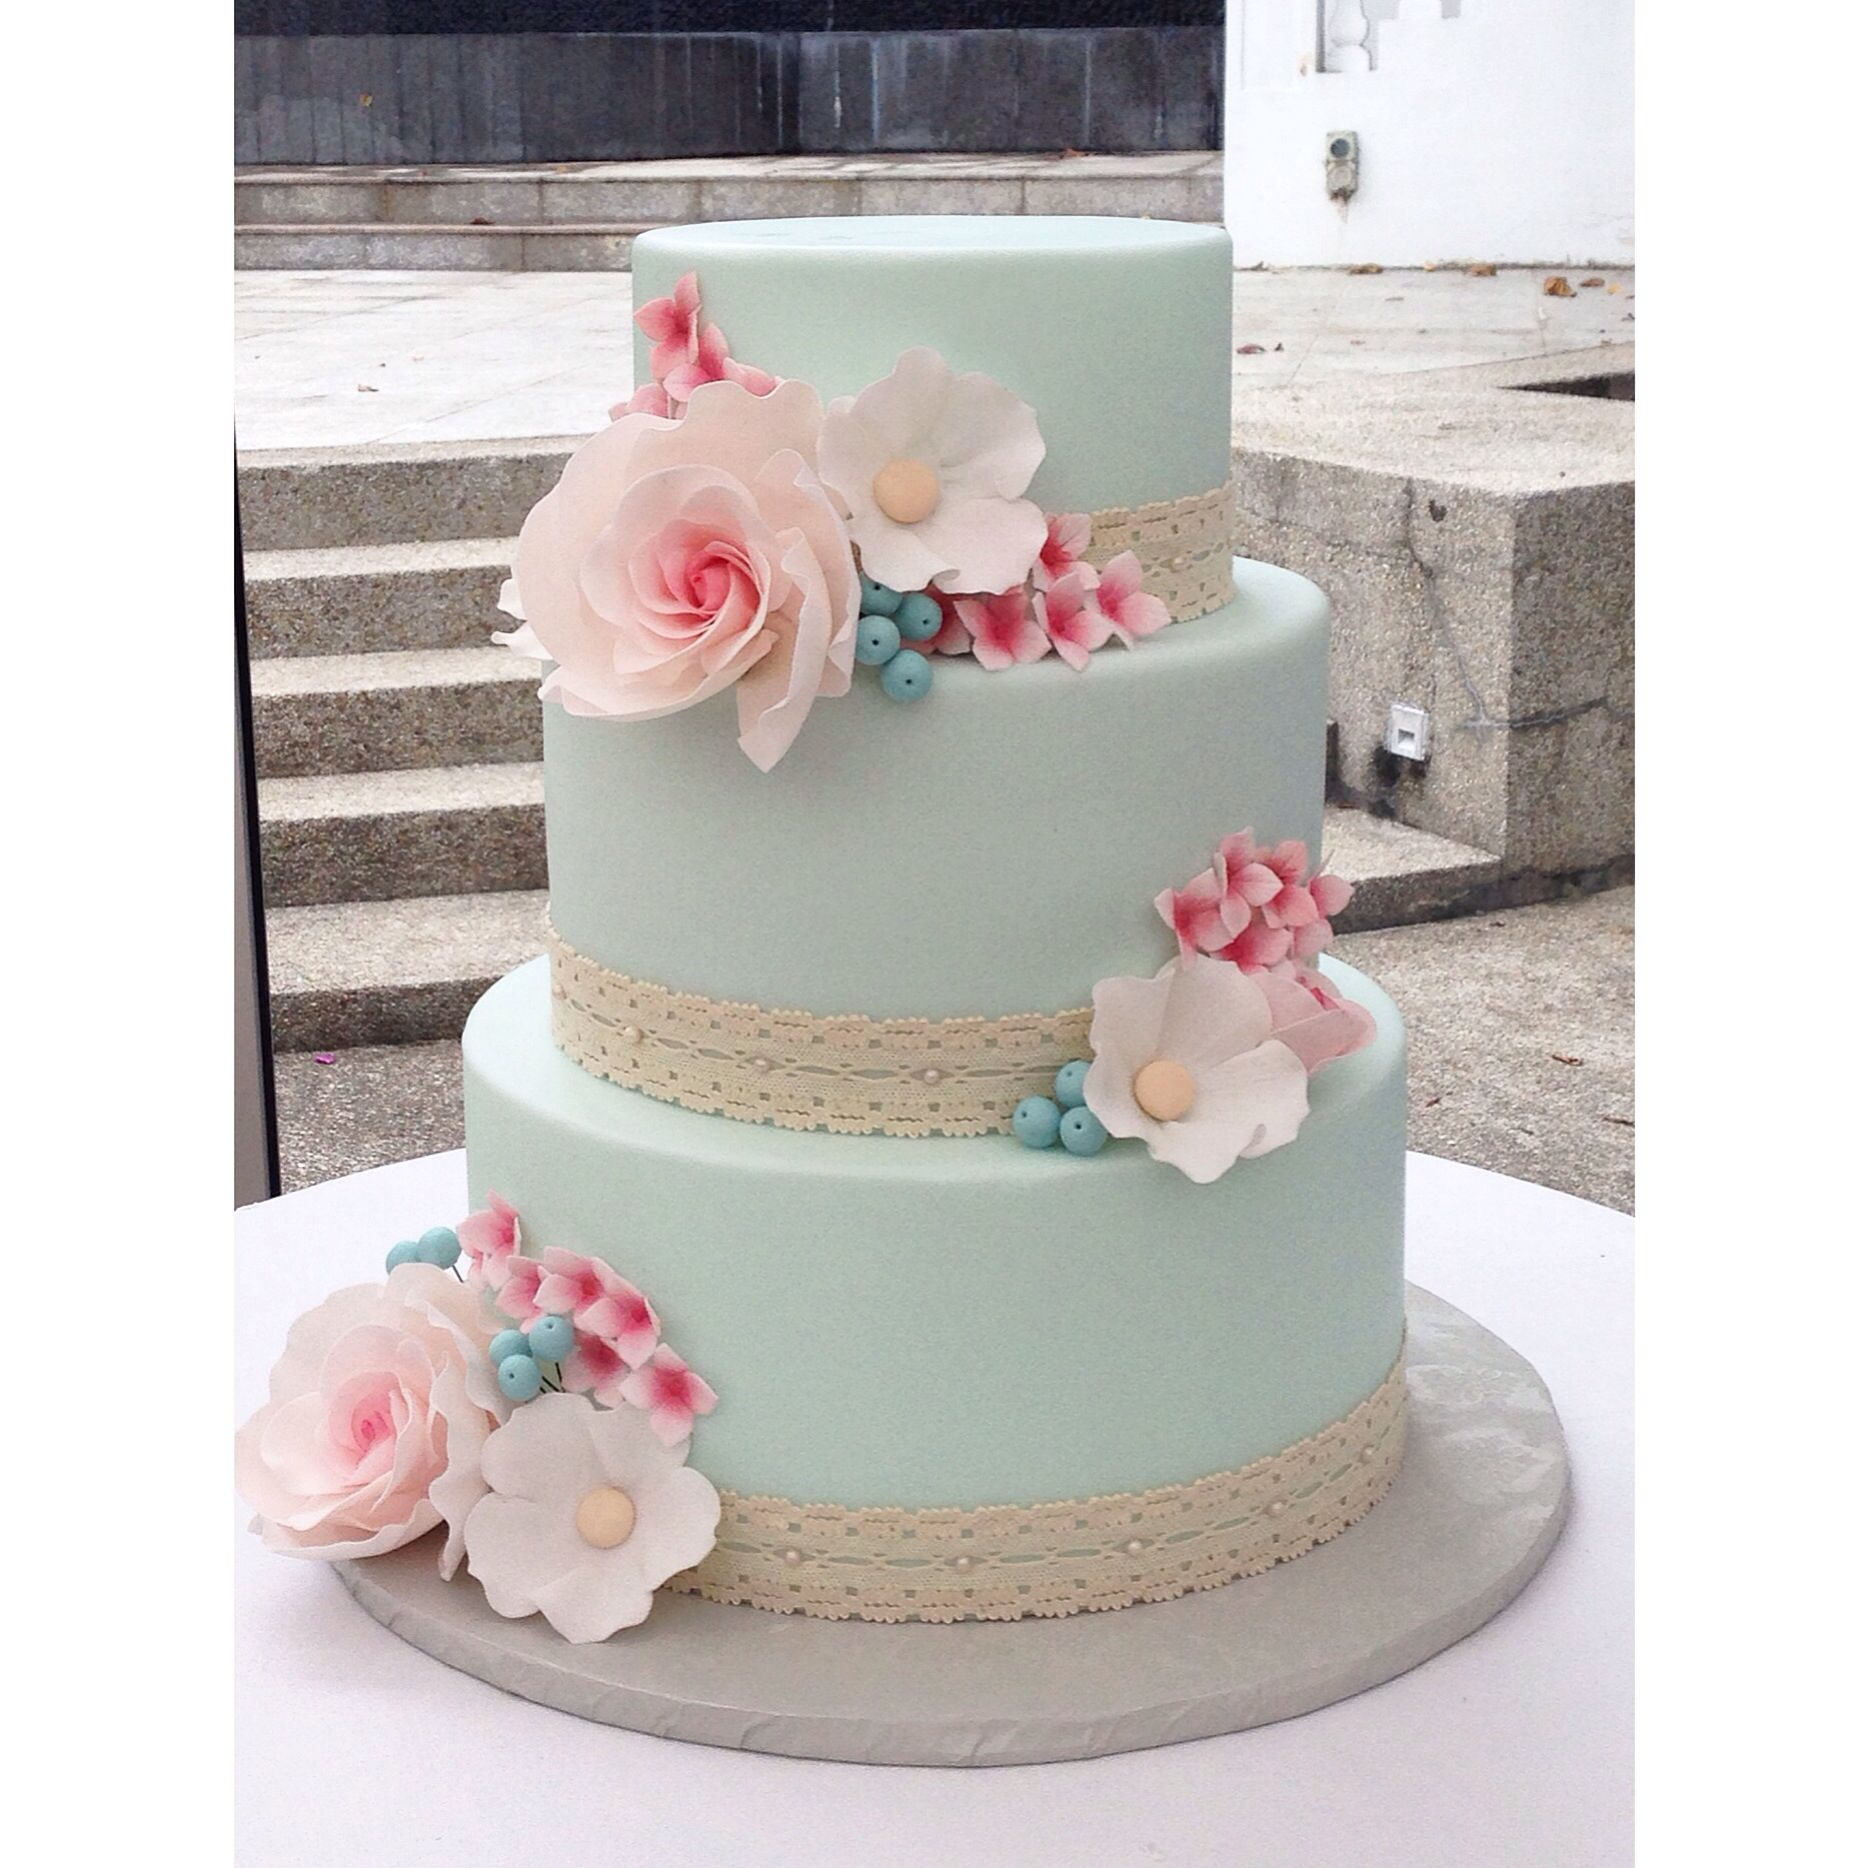 A 1950s inspired wedding cake with mint fondant and pink a 1950s inspired wedding cake with mint fondant and pink sugarflowers by crummb singapore izmirmasajfo